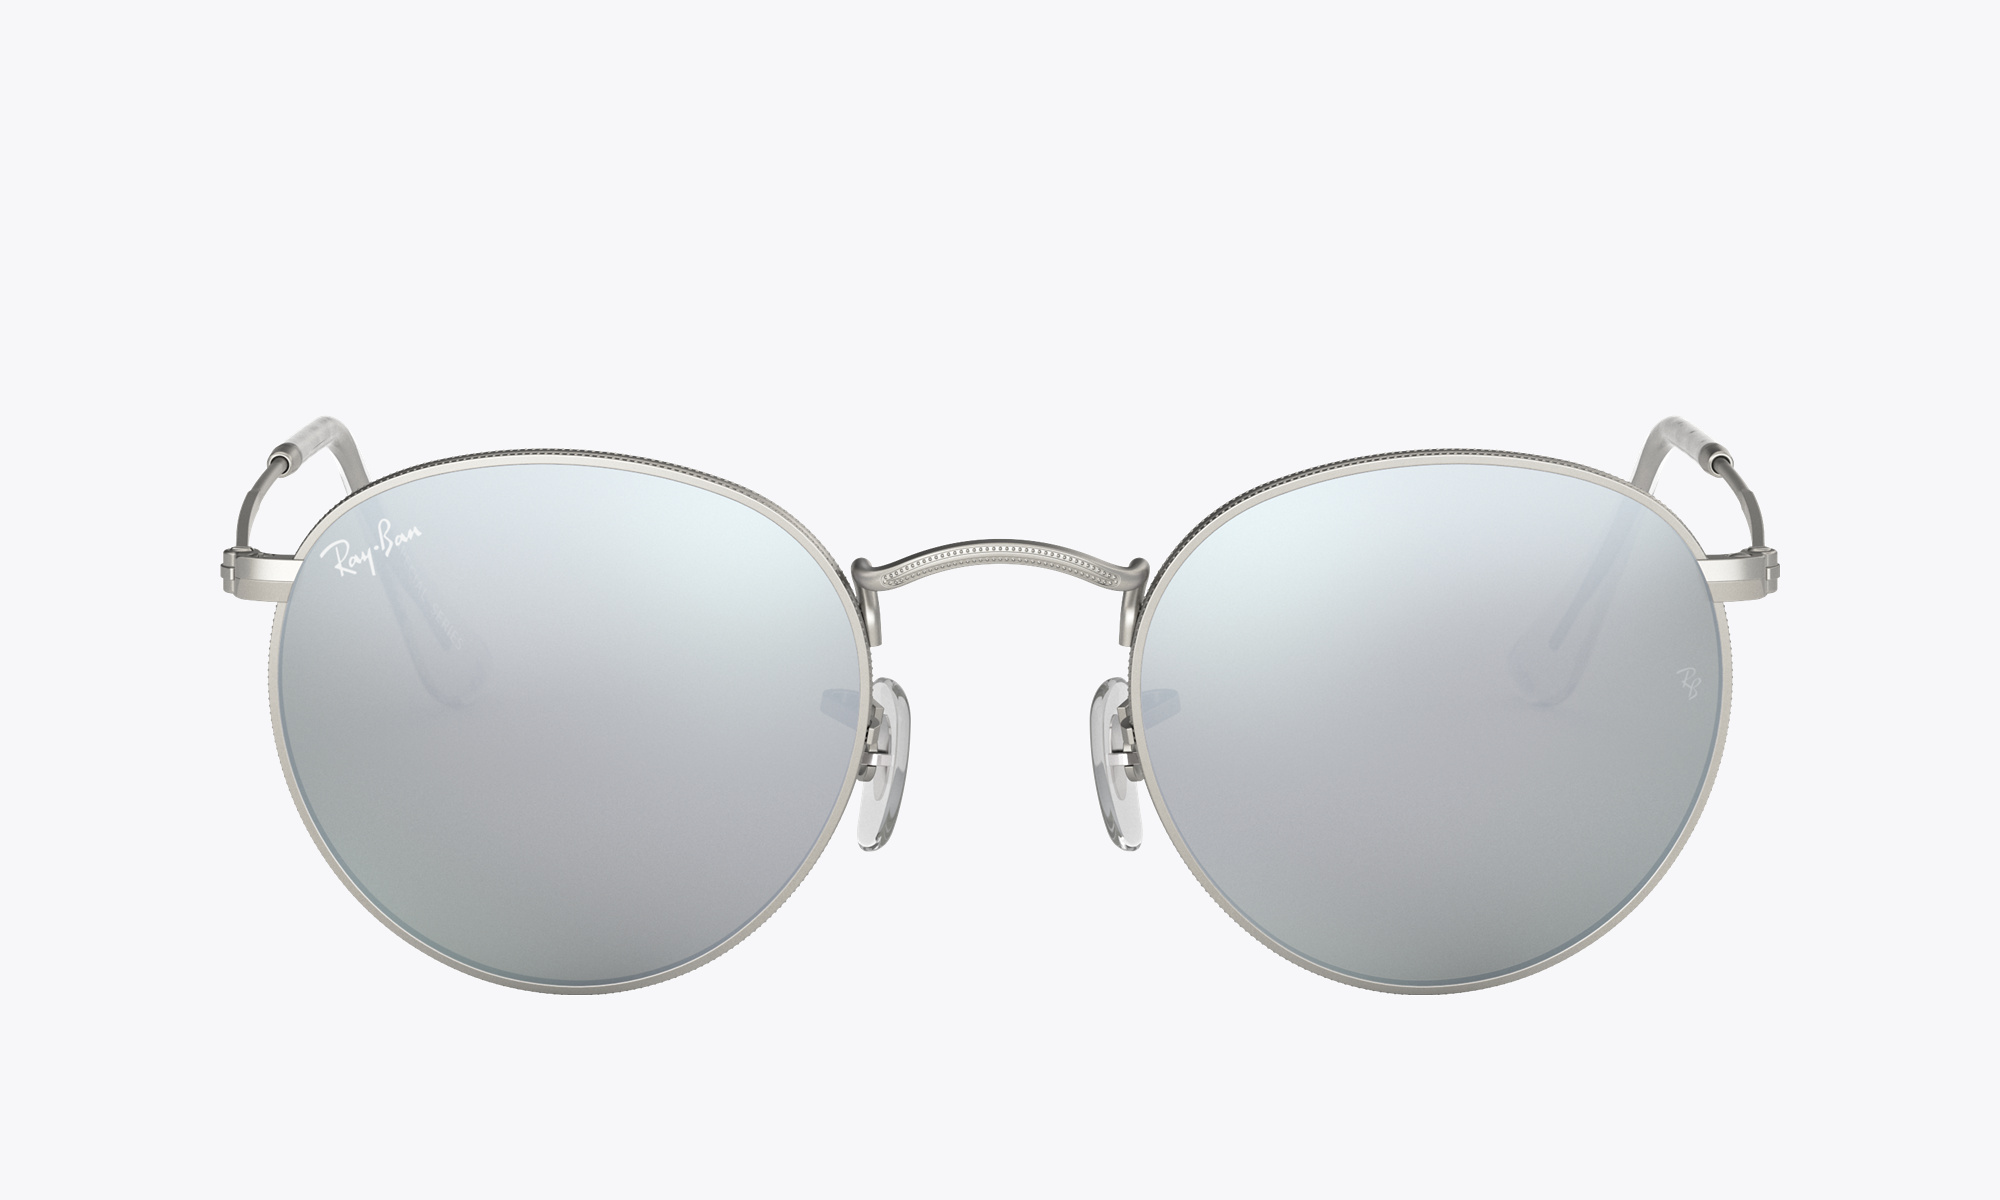 Image of Ray-Ban ROUND FLASH LENSES color Silver